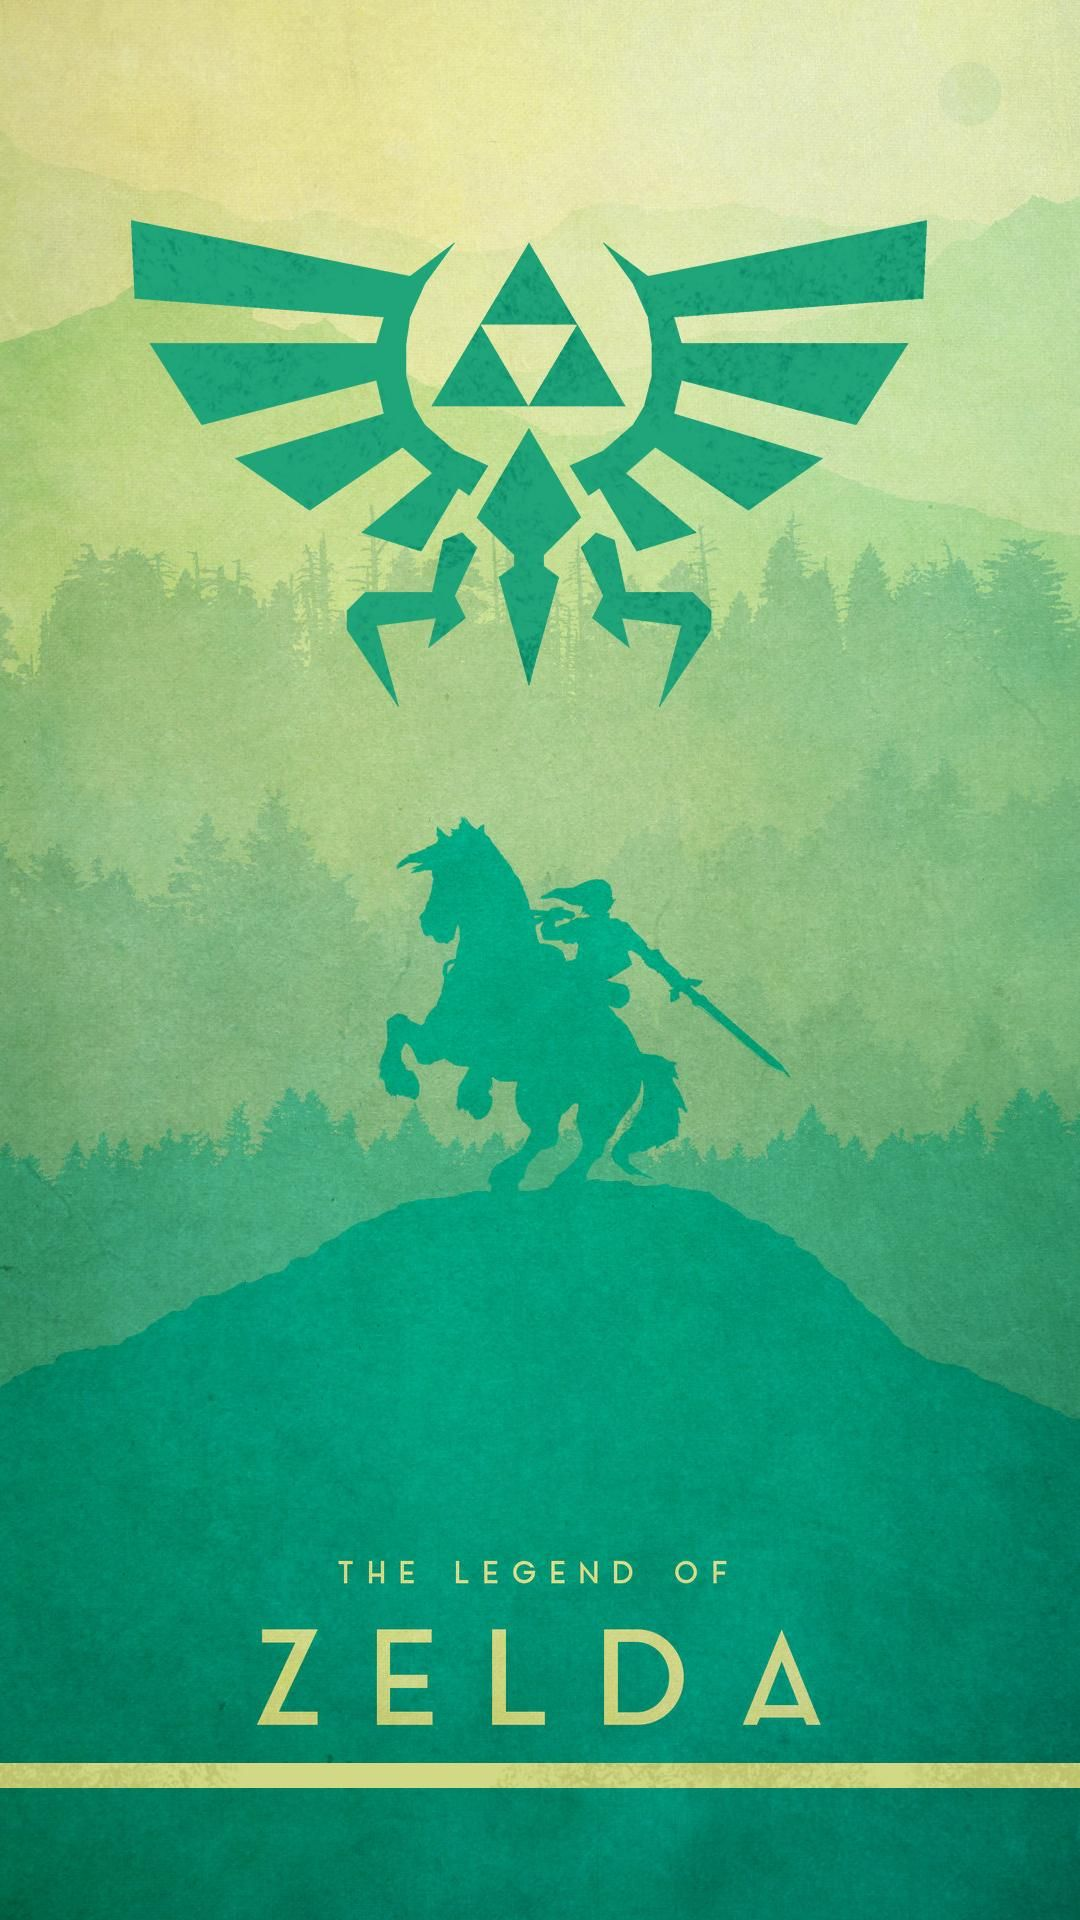 Zelda Mobile Wallpapers 49 Wallpapers Hd Wallpapers Fond Ecran Zelda Dessin Zelda Art Du Jeu